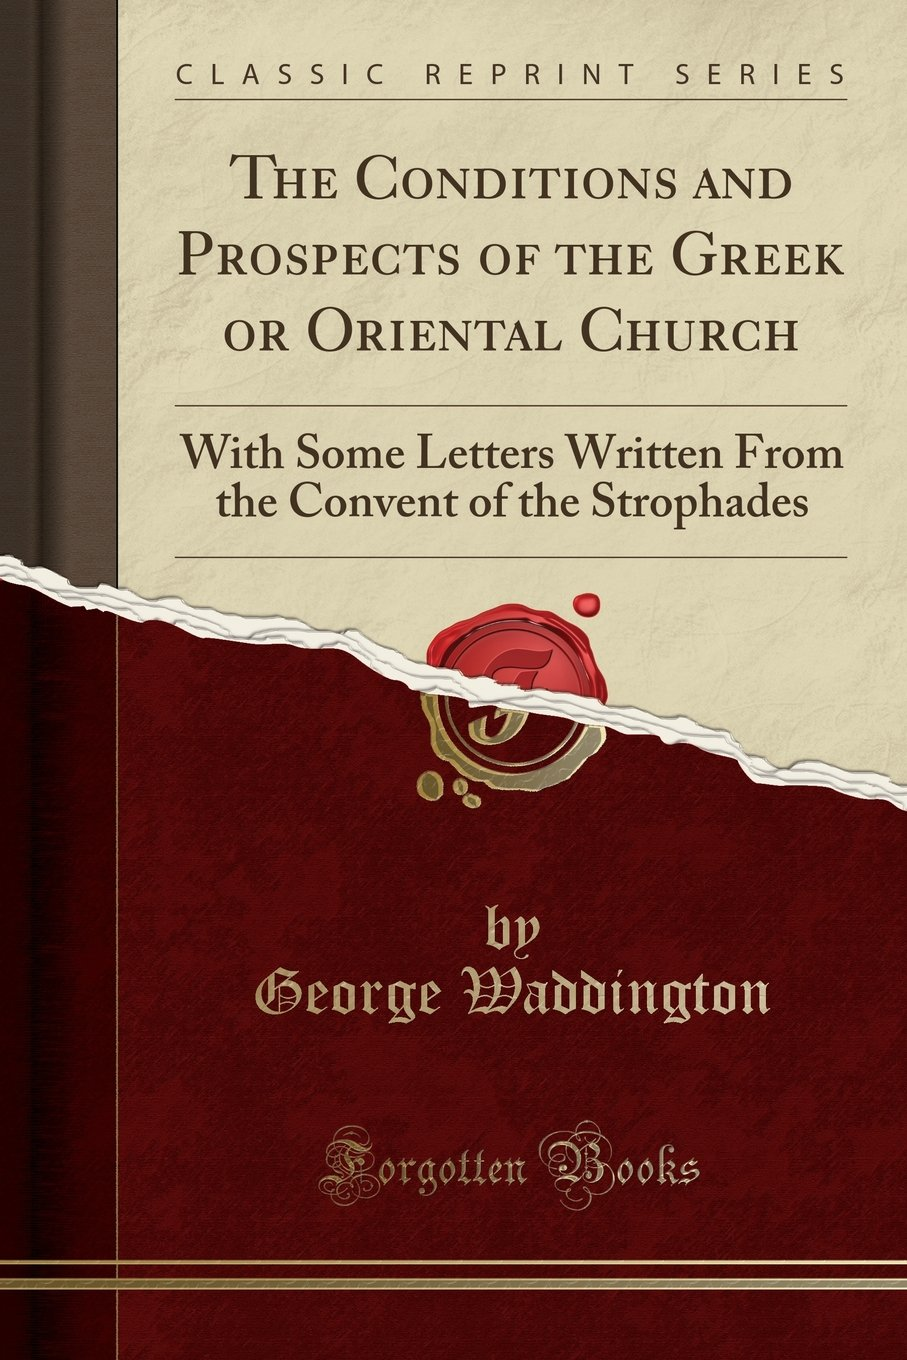 The Conditions and Prospects of the Greek or Oriental Church: With Some Letters Written From the Convent of the Strophades (Classic Reprint) pdf